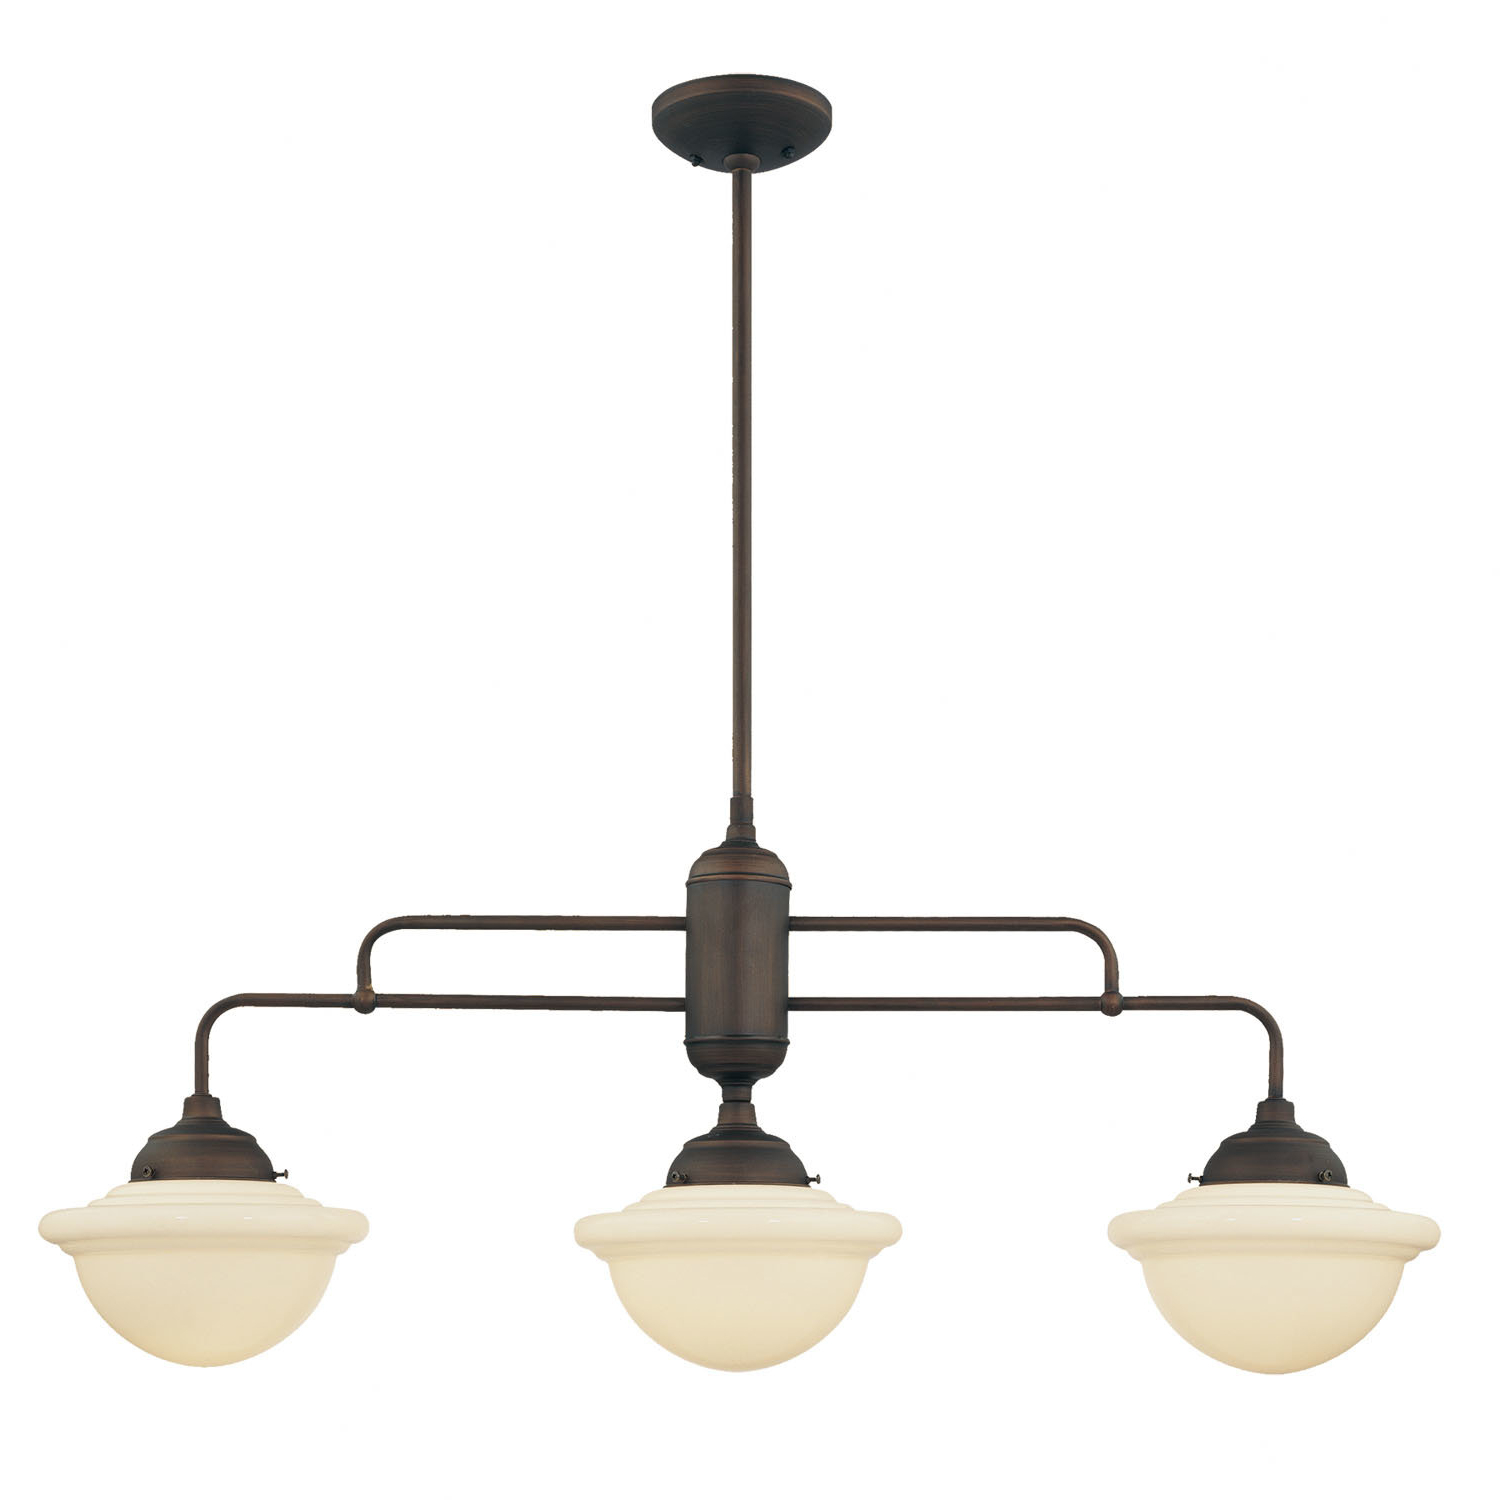 Best And Newest Bruges 3 Light Kitchen Island Schoolhouse Pendant For Dunson 3 Light Kitchen Island Pendants (View 15 of 20)